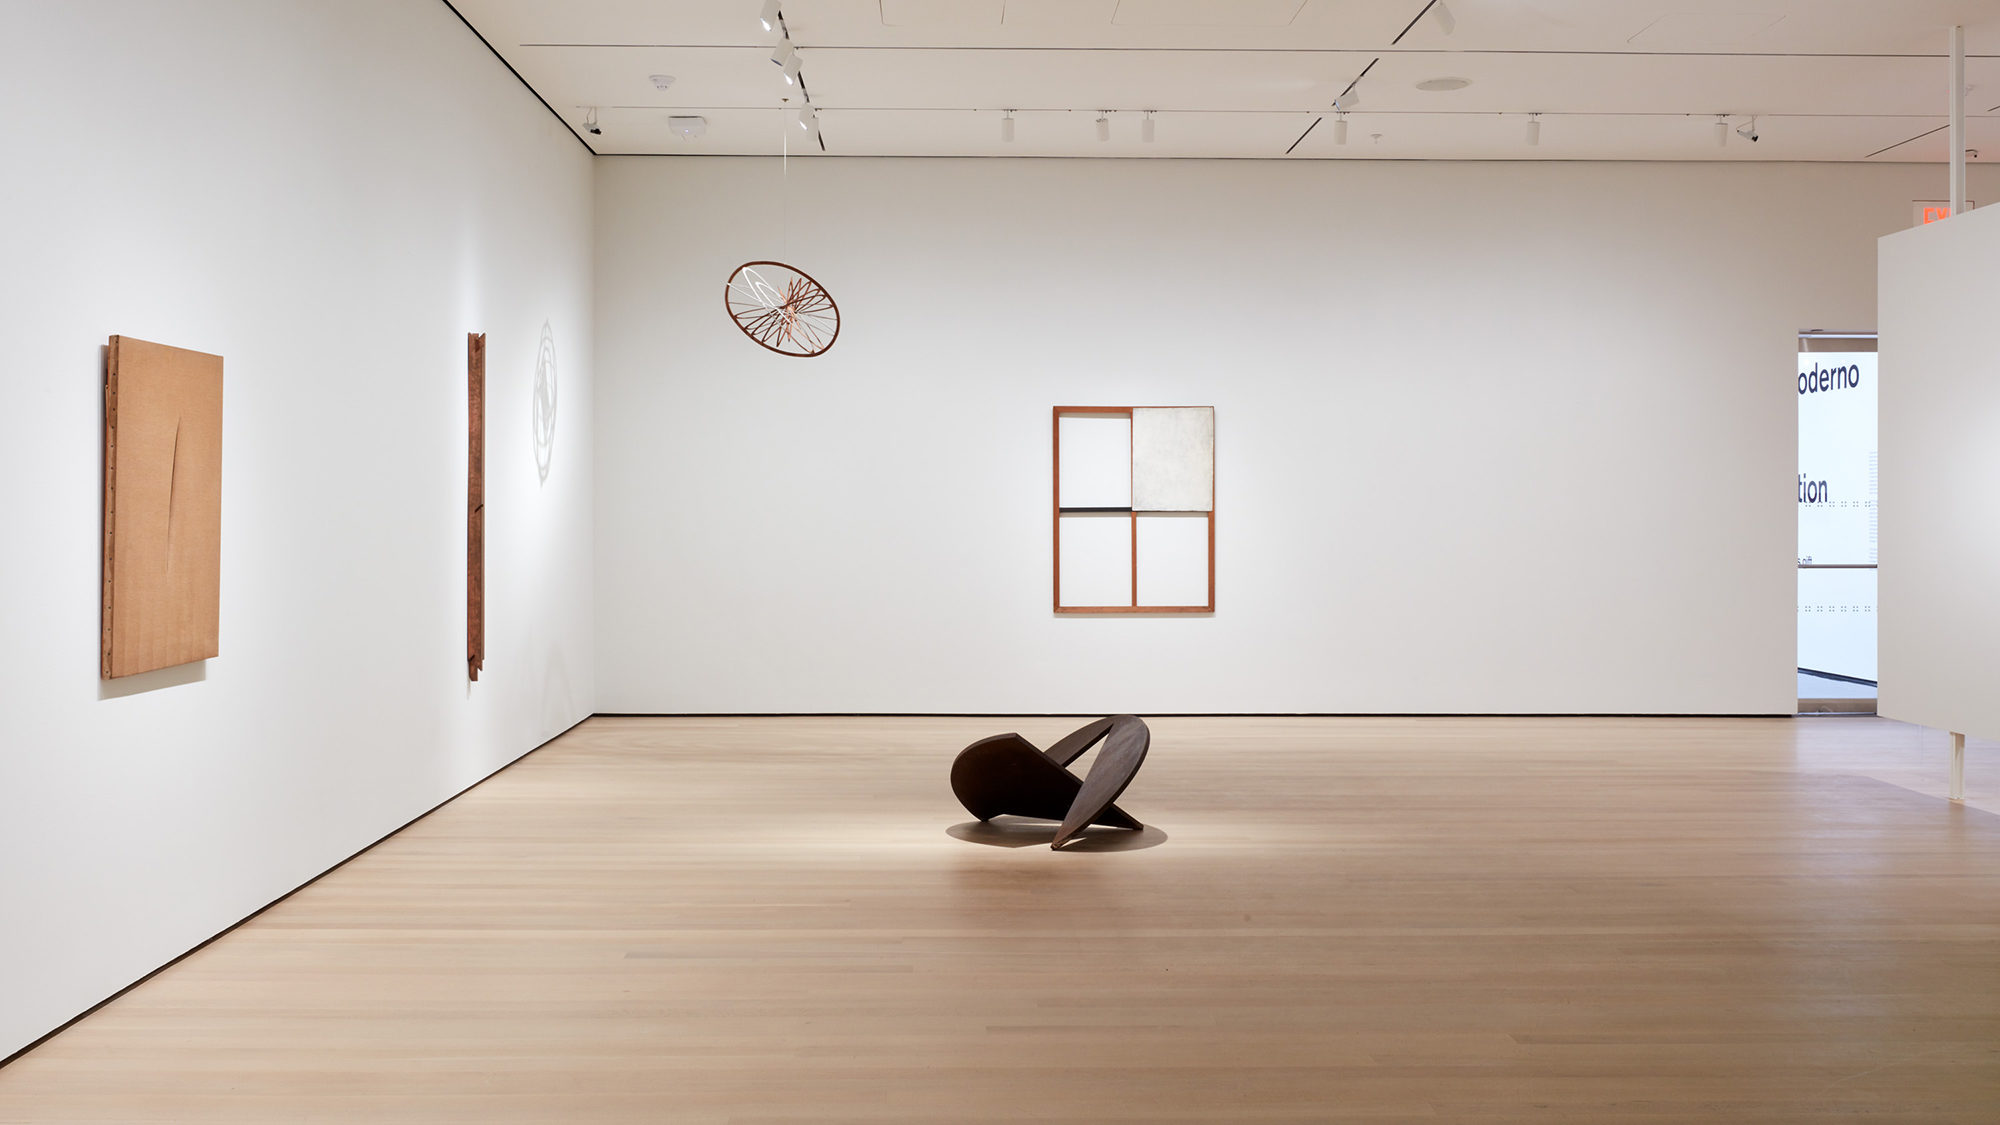 Installation view of Sur moderno: Journeys of Abstraction―The Patricia Phelps de Cisneros Gift, The Museum of Modern Art, New York, October 21, 2019 – March 14, 2020. © 2019 The Museum of Modern Art. Photo: Heidi Bohnenkamp